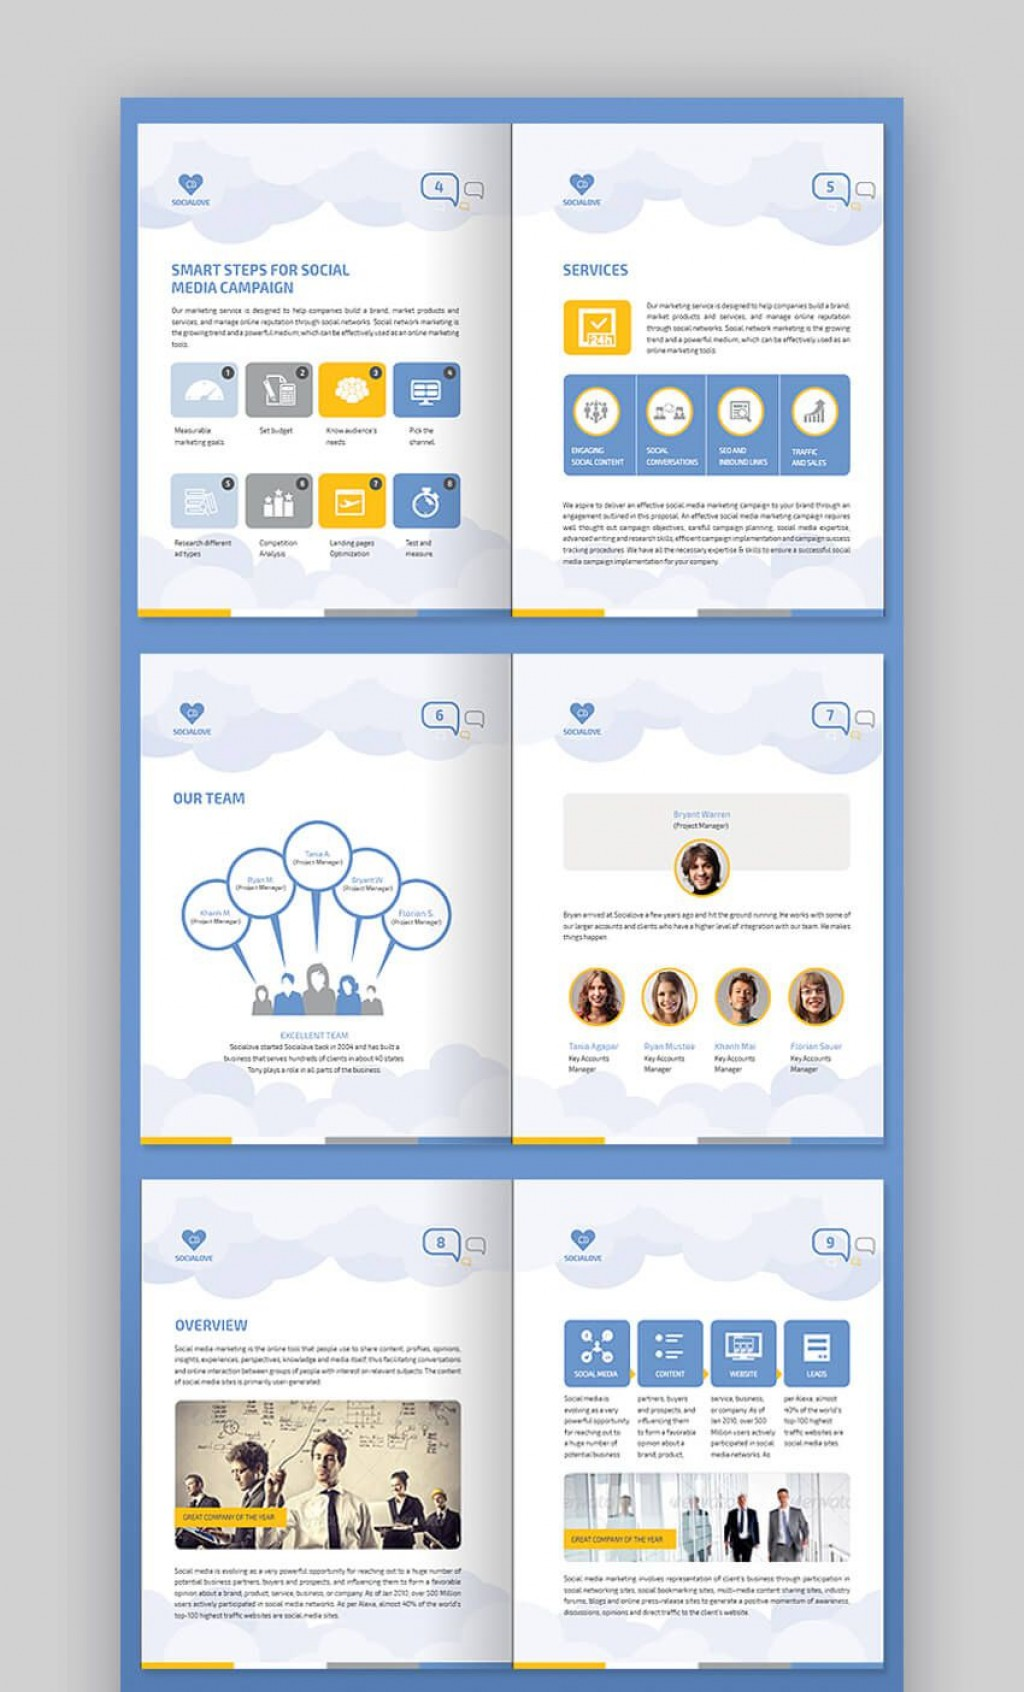 009 Imposing Social Media Proposal Template Image  Plan Sample Pdf 2018Large